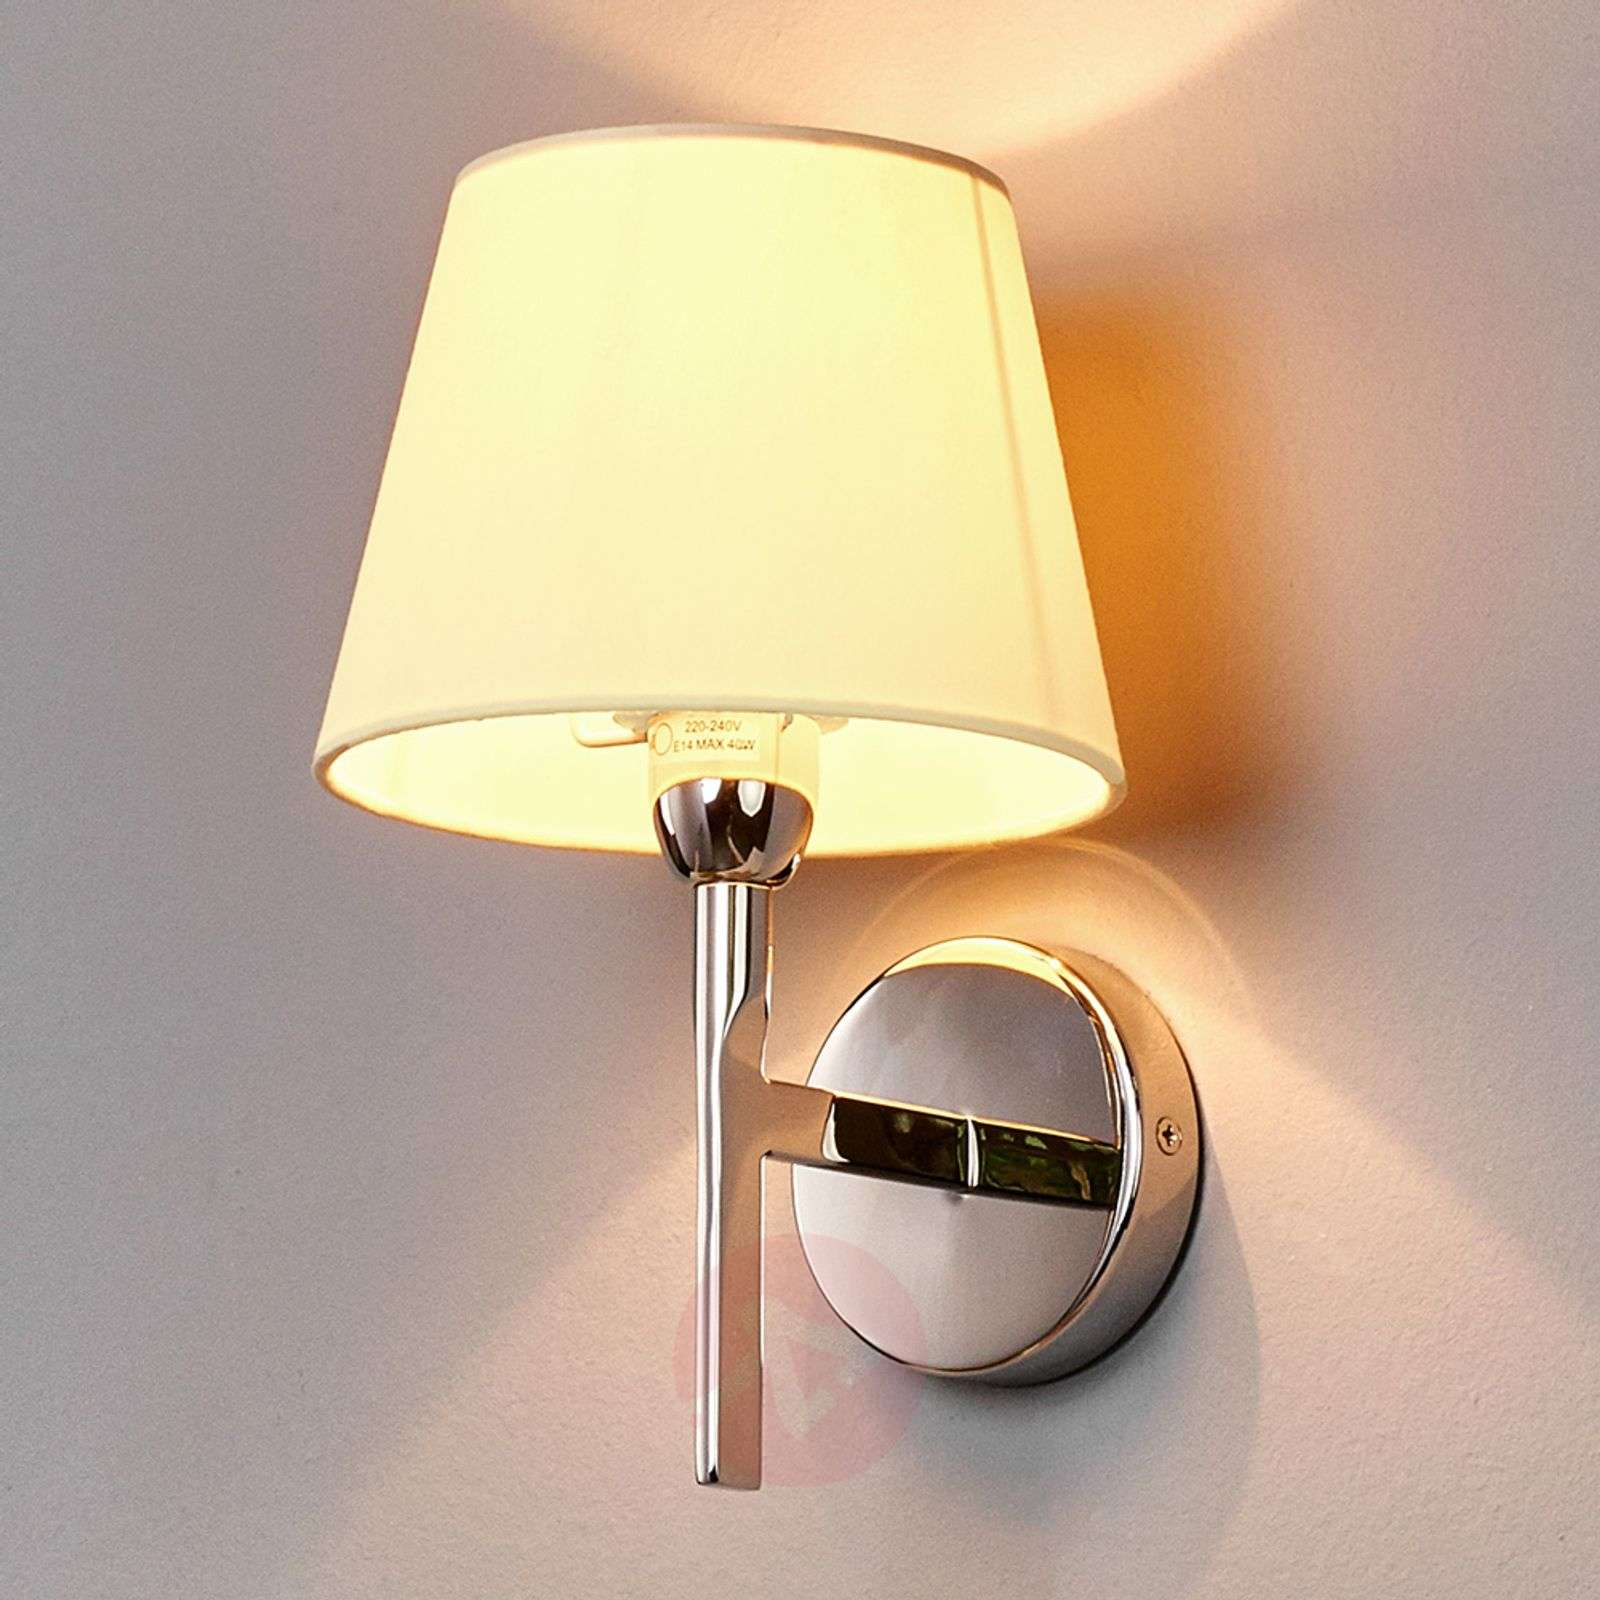 Antje Fabric Wall Light with Round Shade-9612022-01